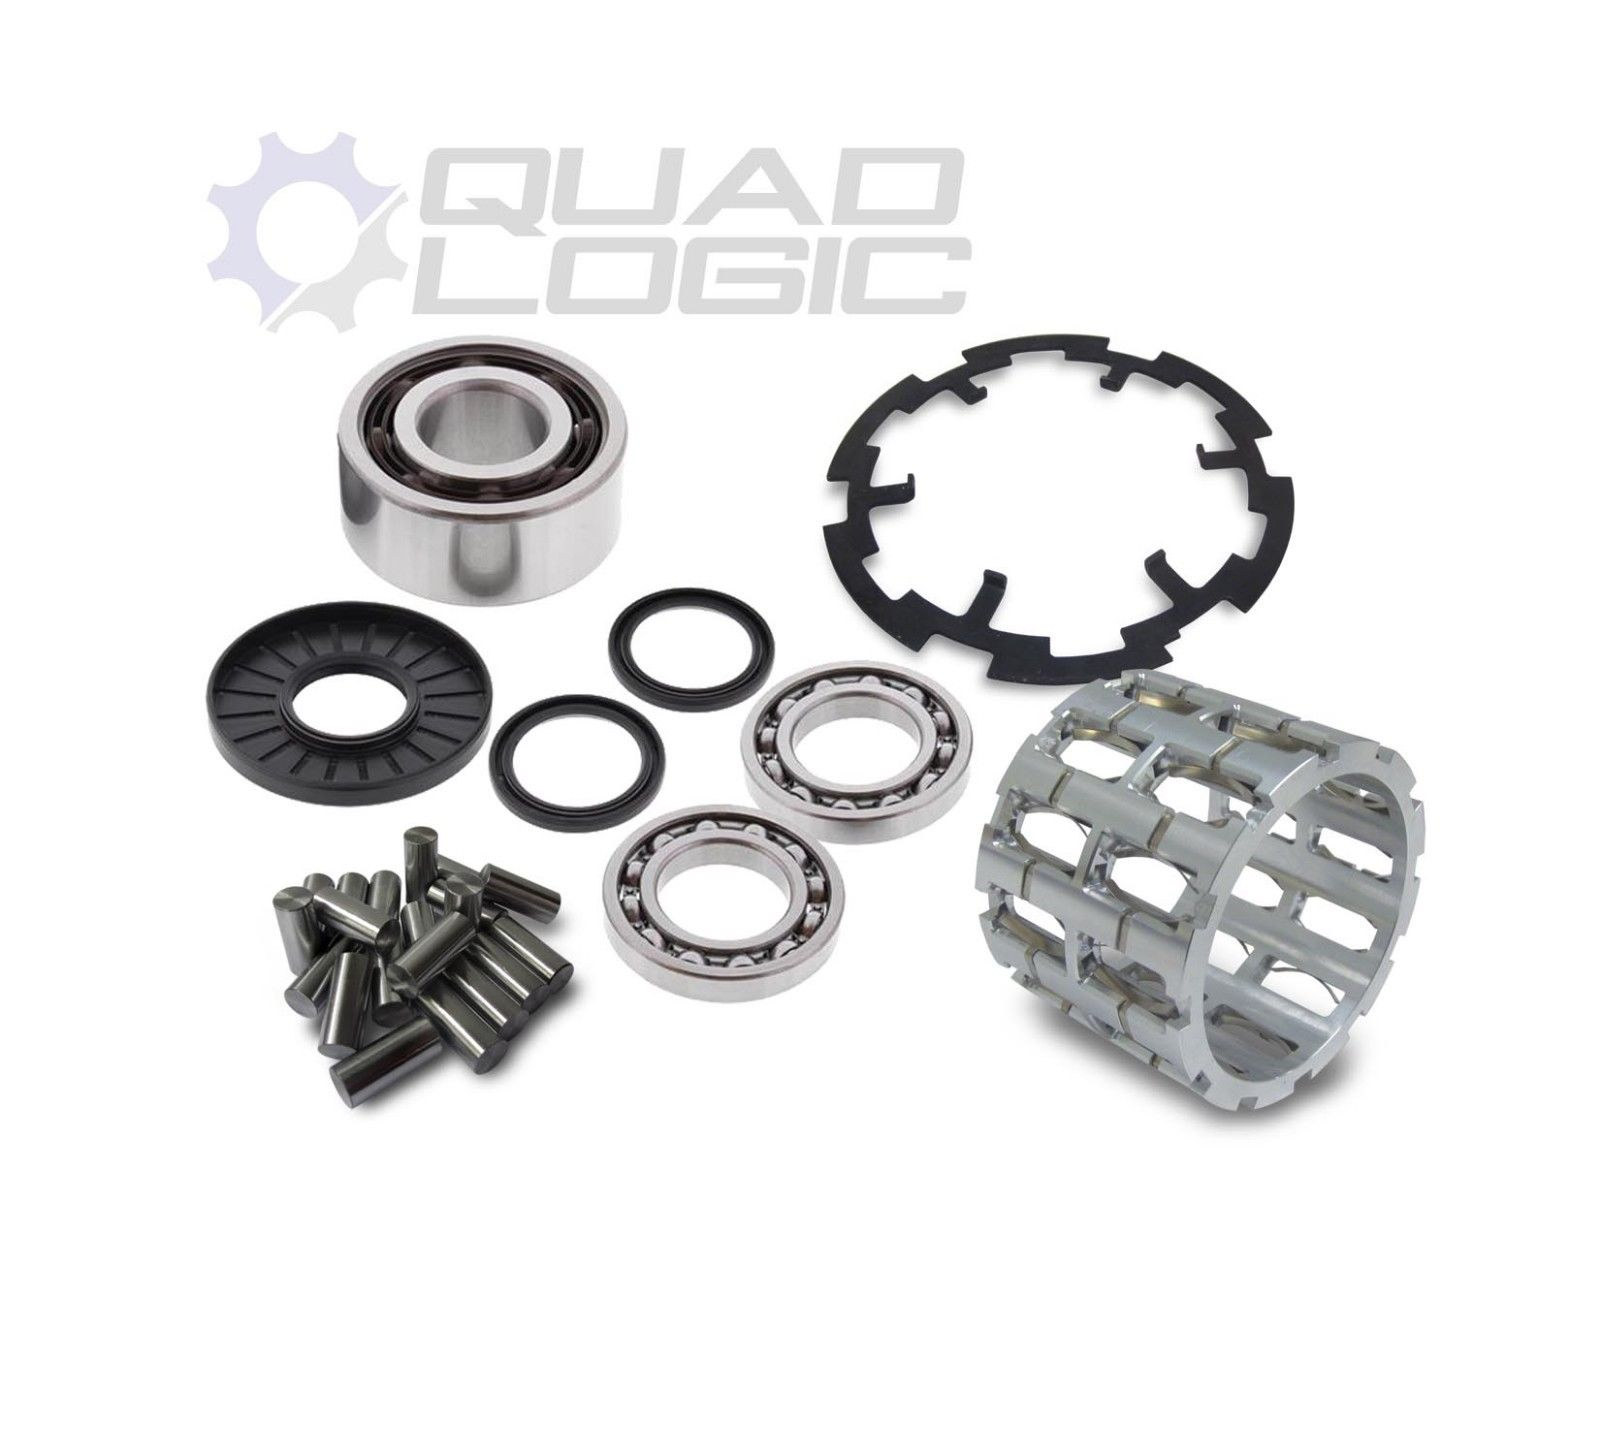 Sportsman 570 Front Differential Rebuild Kit With Aluminum